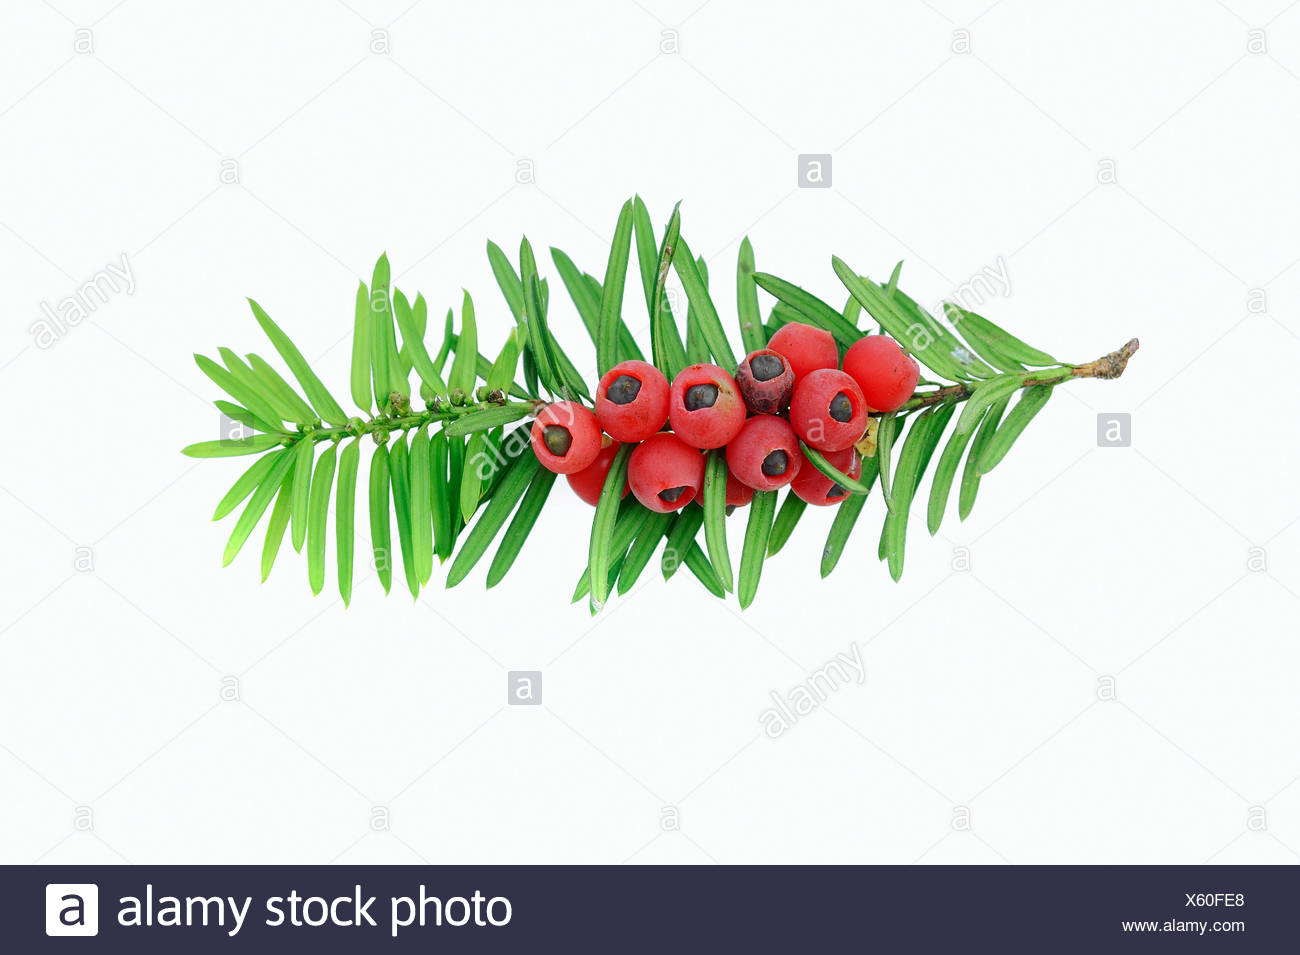 Yew (Taxus baccata), twig with berries, poisonous plant, North Rhine-Westphalia - Stock Image